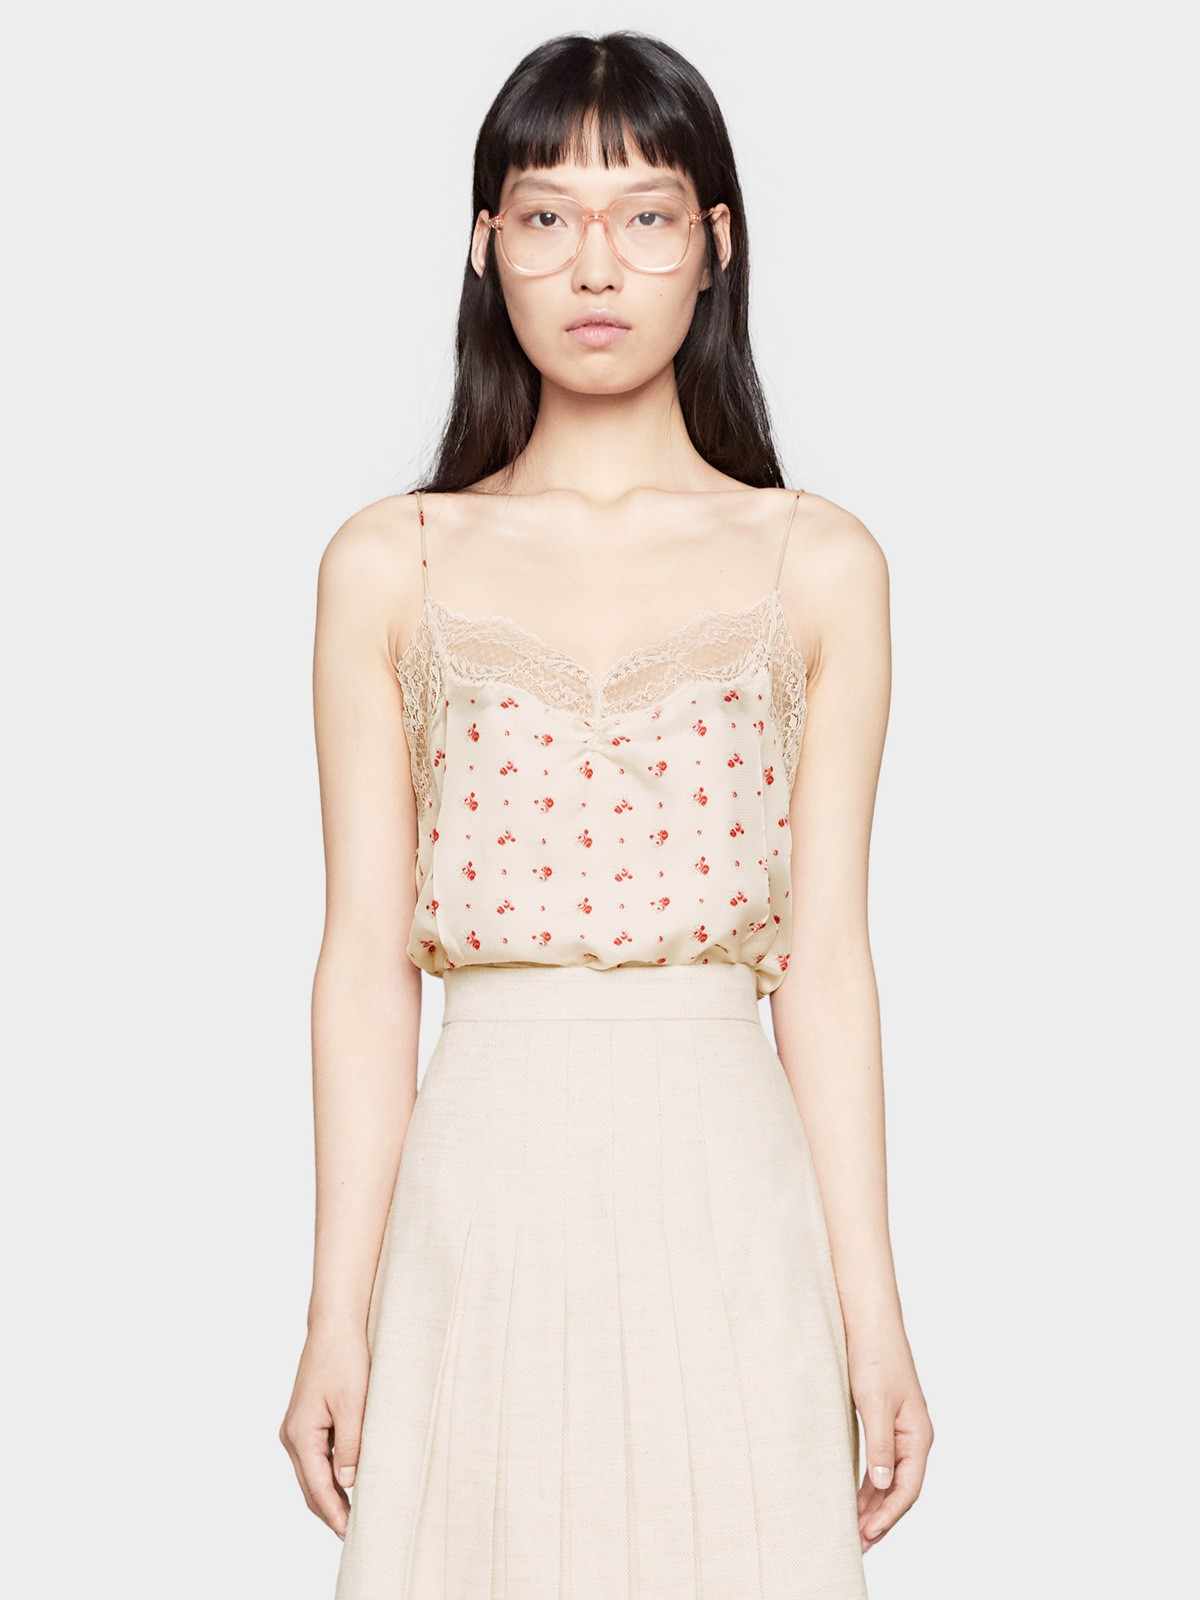 af99b27bb gucci ROSE PRINTED TOP available on montiboutique.com - 21992